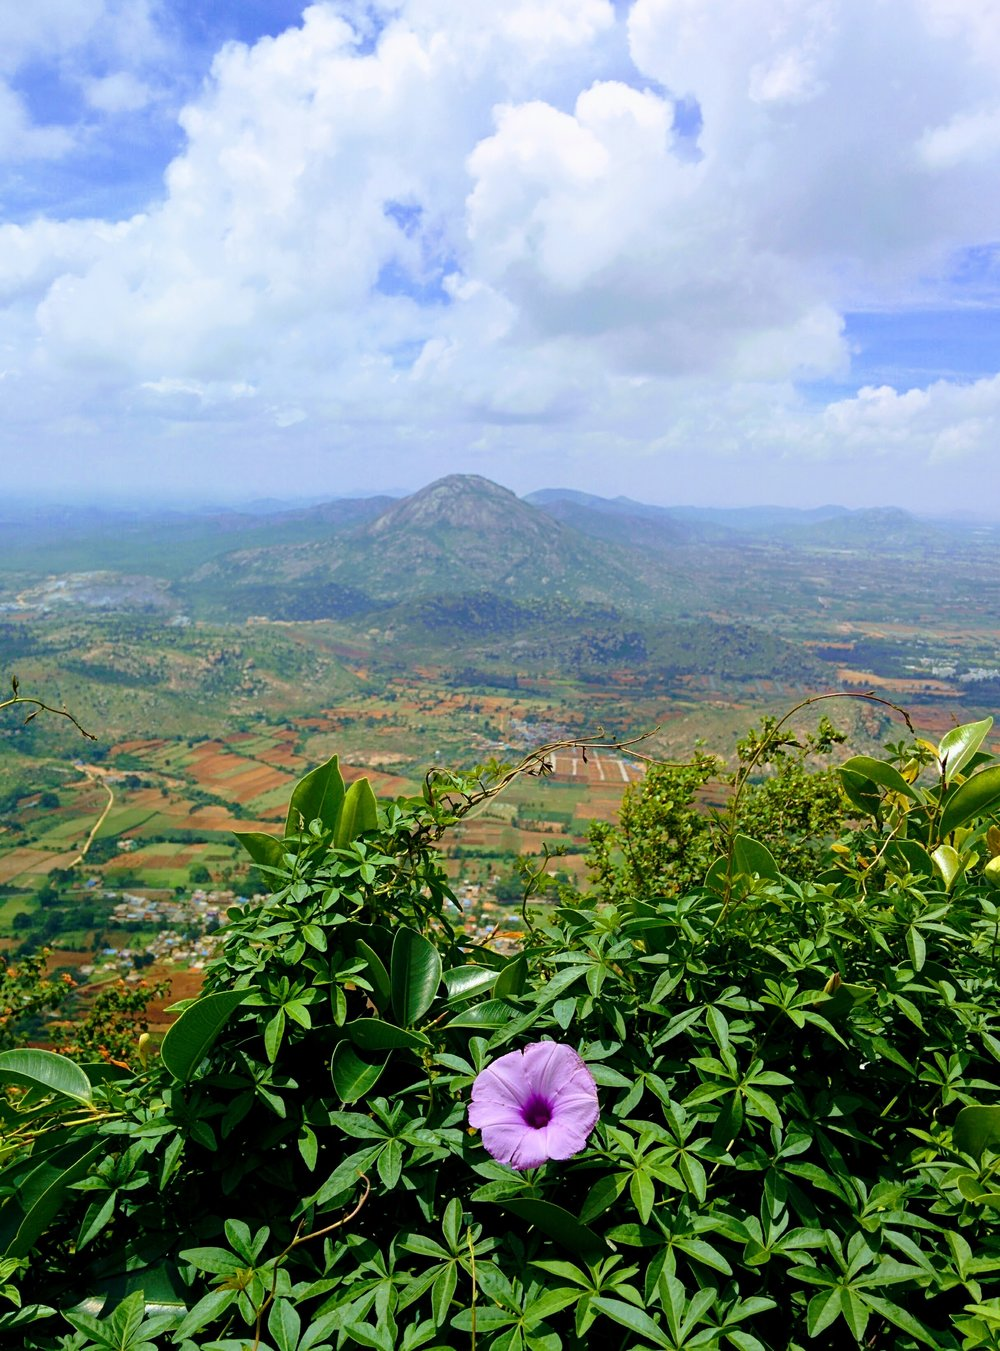 Nandi Hills- the views are beautiful any time of day!